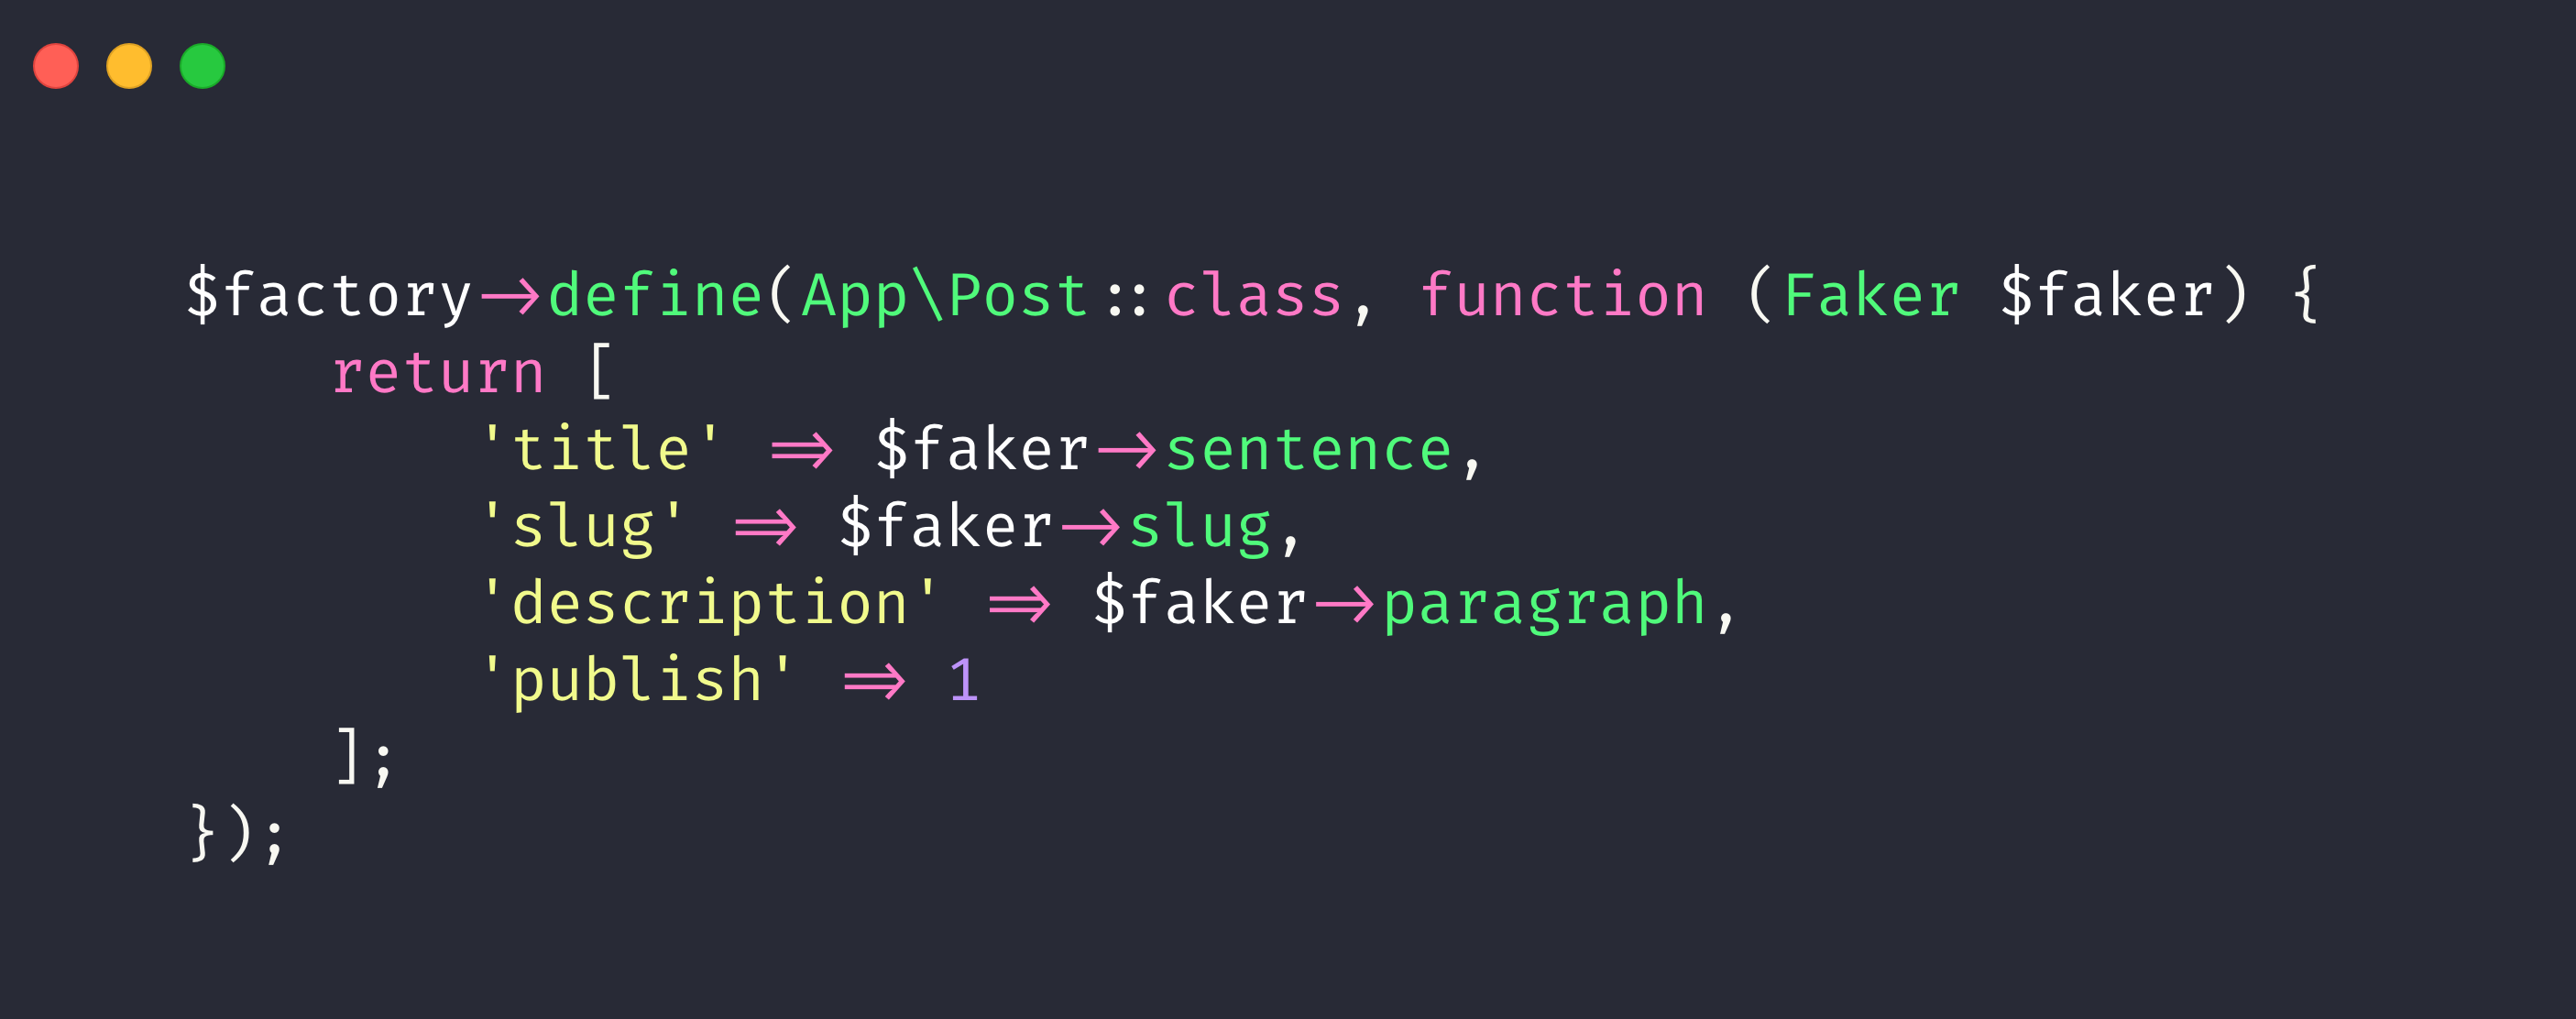 Image for How to use Slug in Laravel Factory